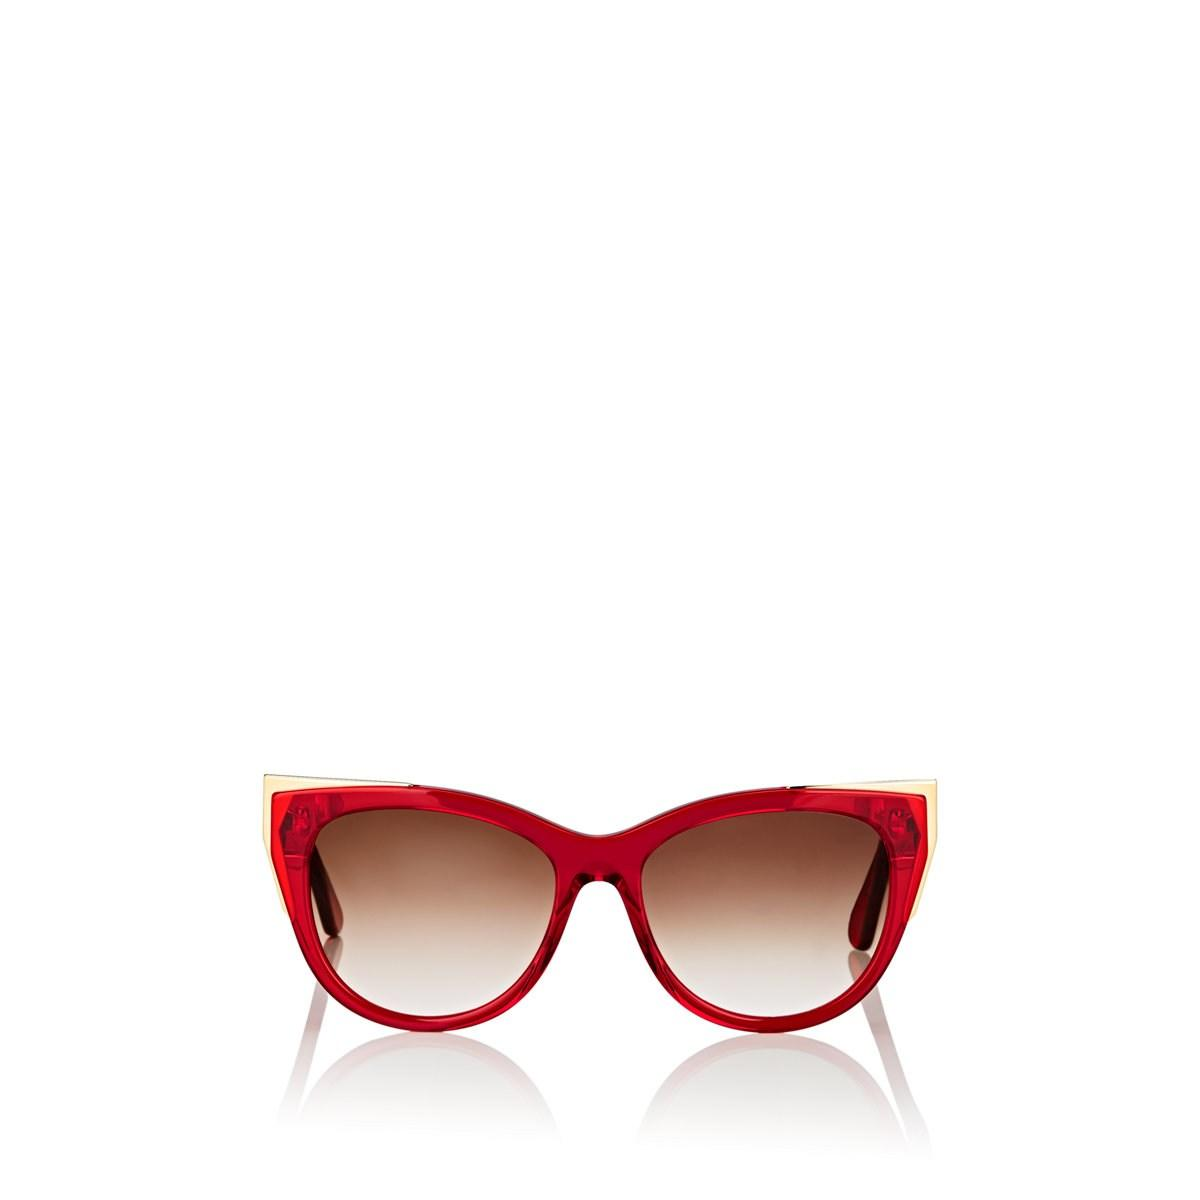 0429af2e77 Lyst - Thierry Lasry Epiphany Sunglasses in Red